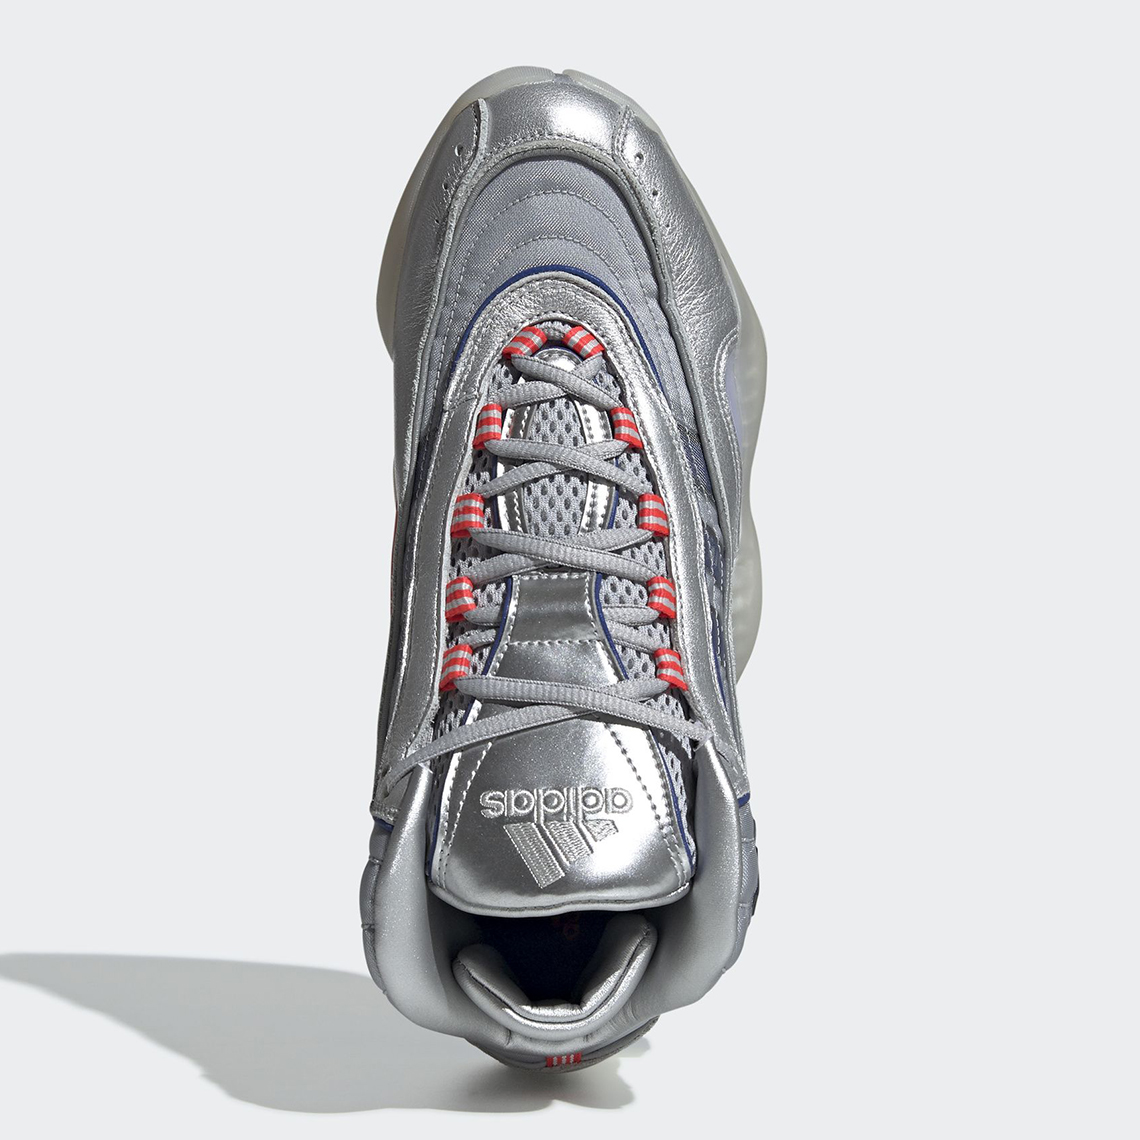 new concept cdd4d 57ef8 adidas Crazy 98 Micropacer BYW Silver EF5537 Release Date ..